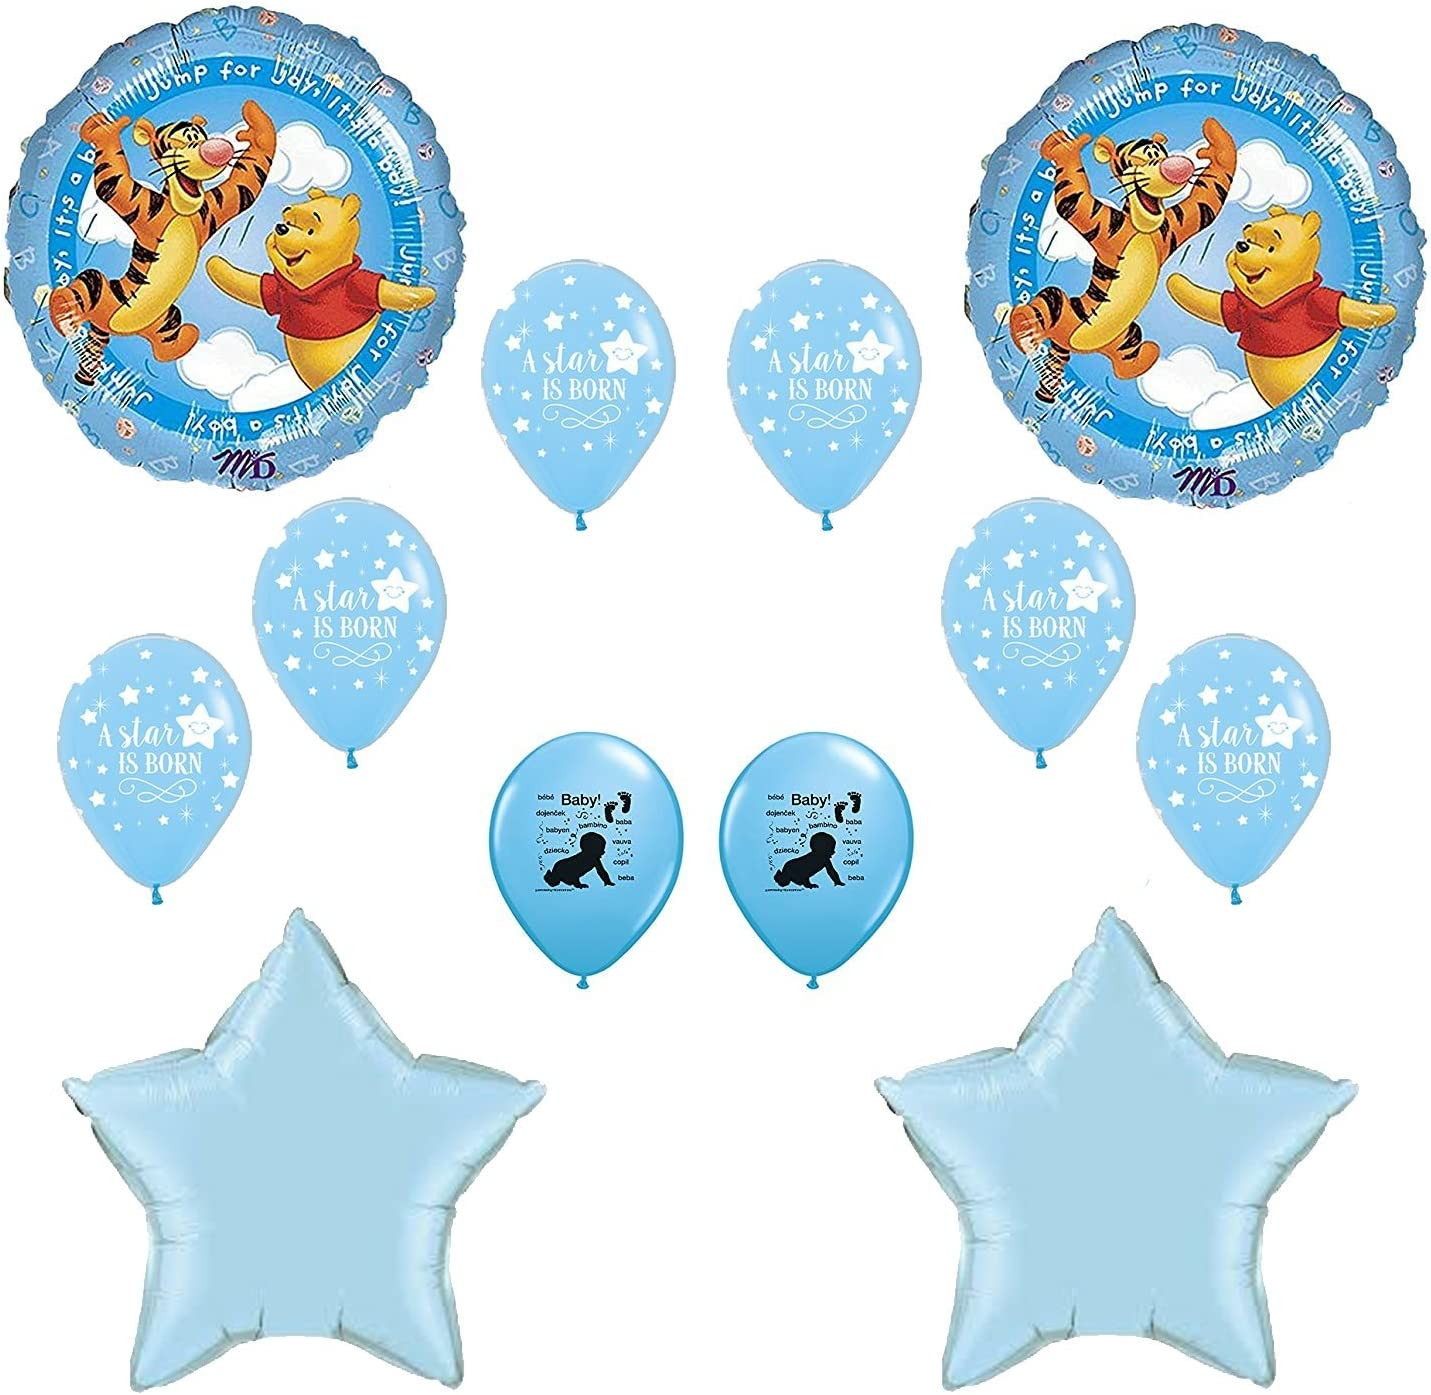 Winnie The Pooh Shower Decorations  from images-na.ssl-images-amazon.com